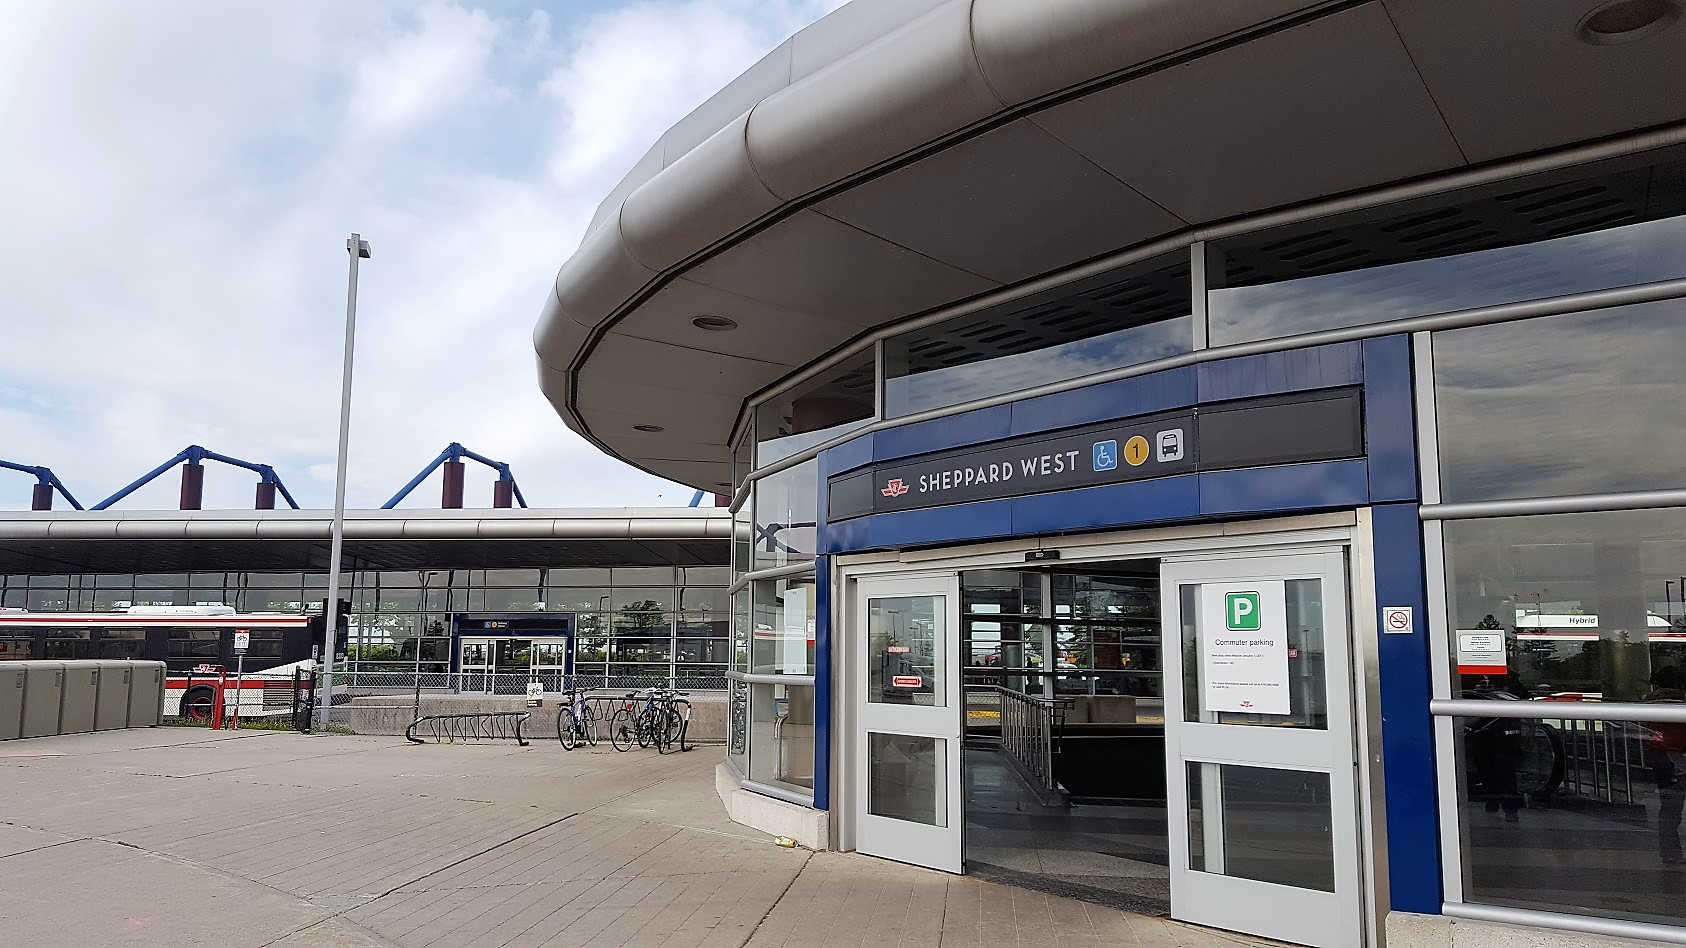 Sheppard West Station, formerly Downsview